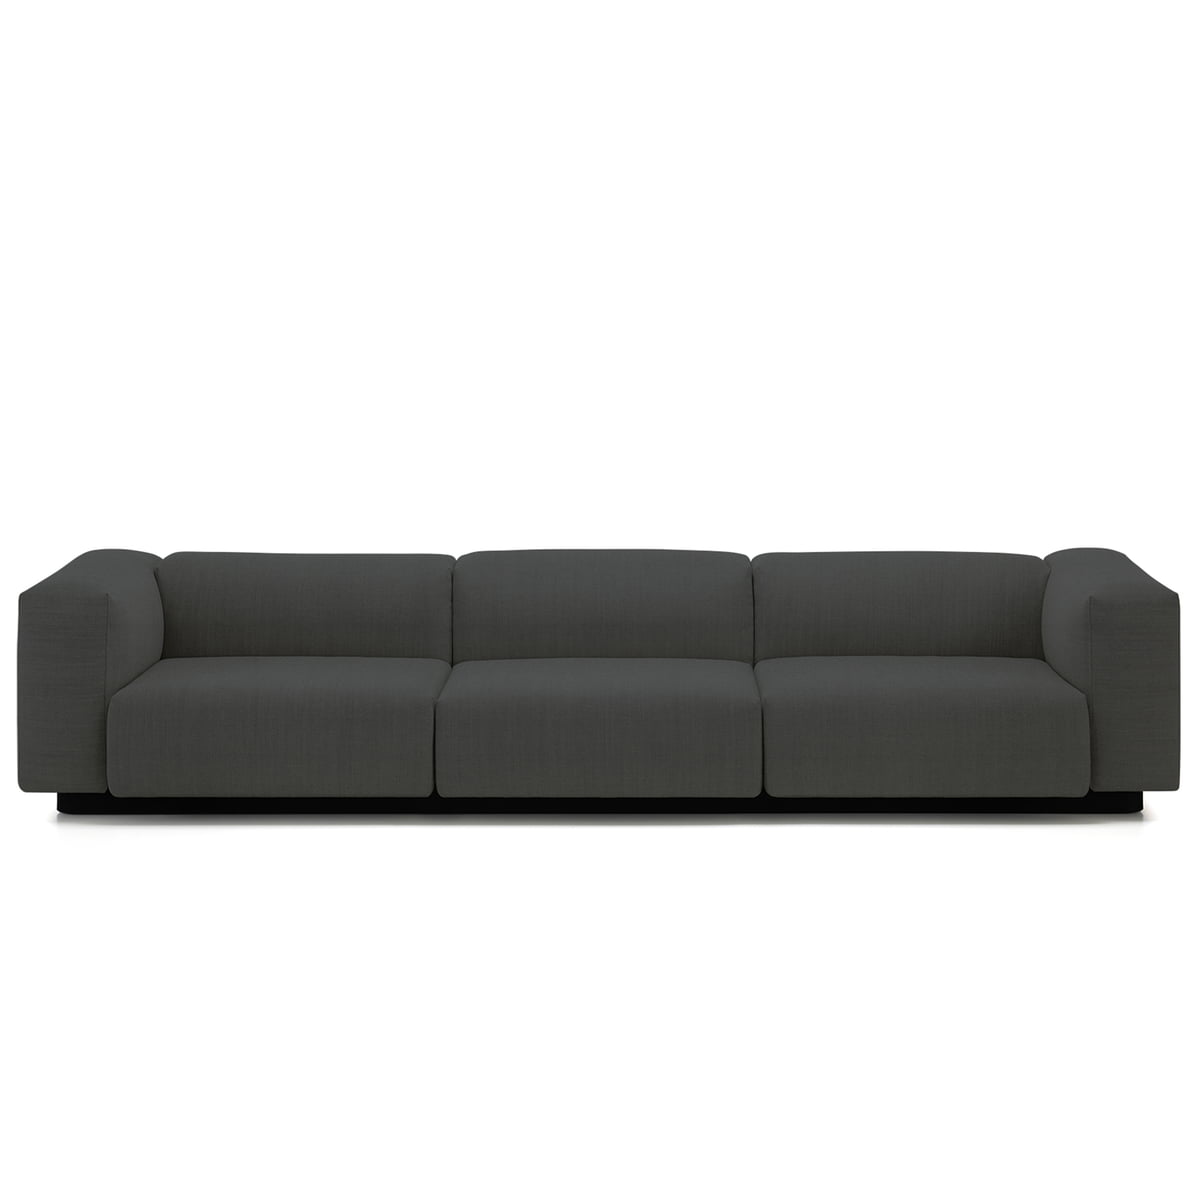 vitra soft modular 3 seater connox shop. Black Bedroom Furniture Sets. Home Design Ideas